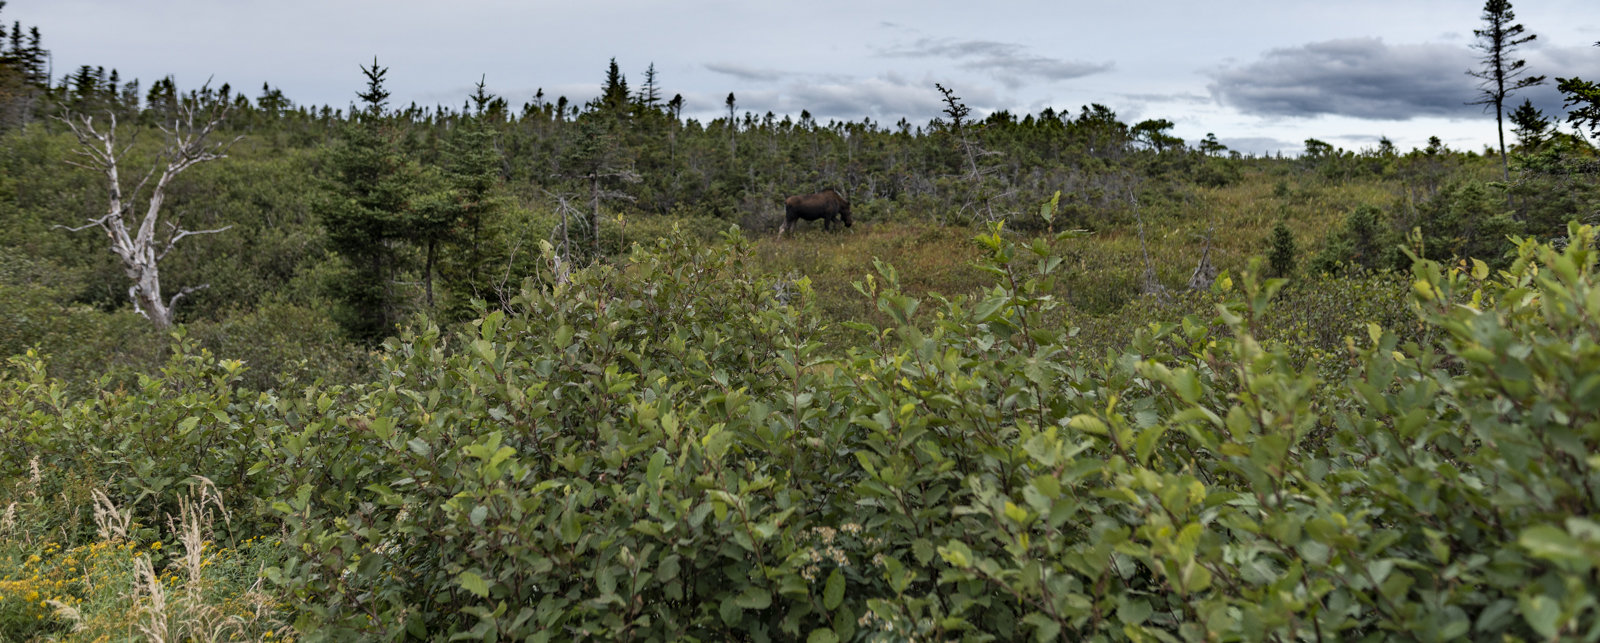 Moose on the side of the trail